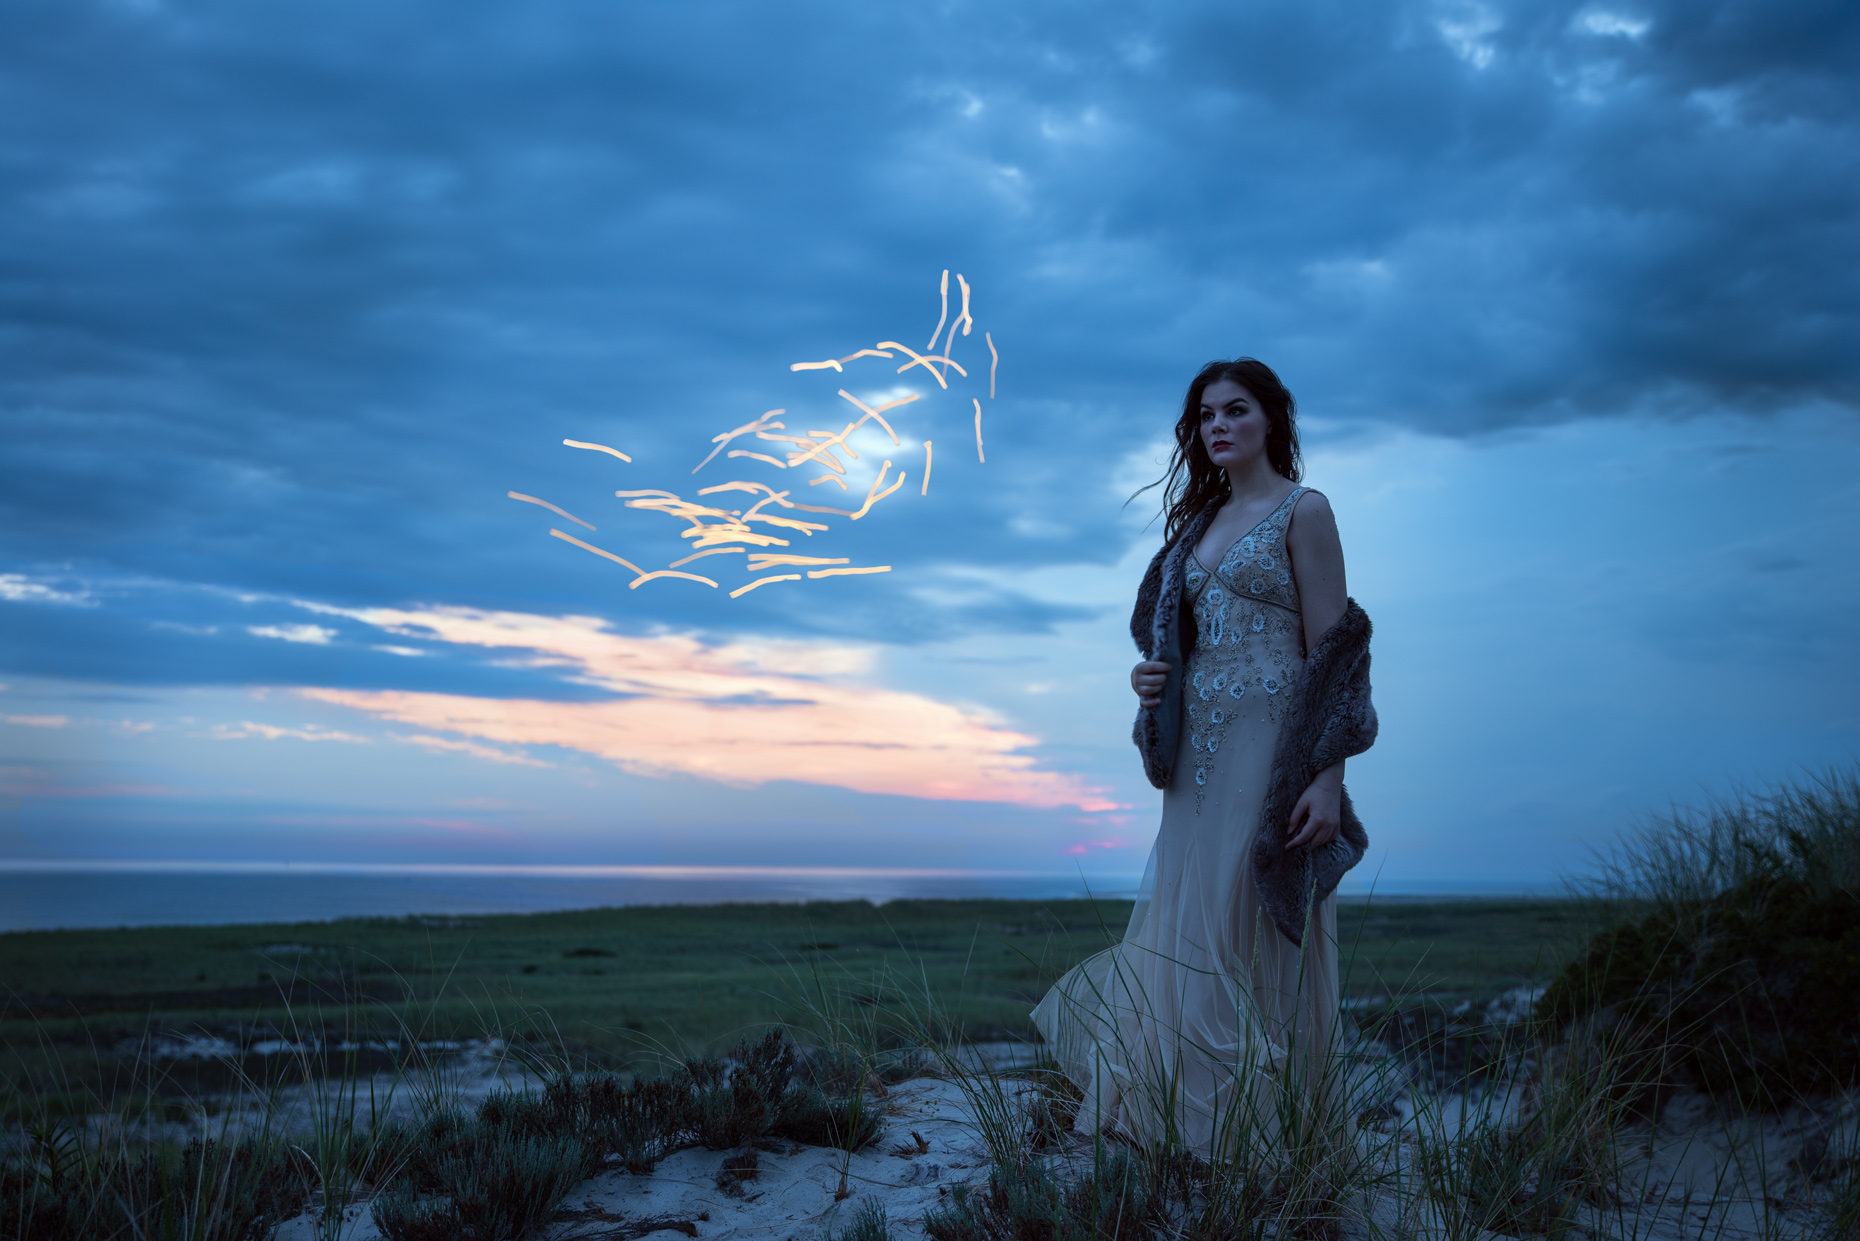 Woman in a gown standing on a sand dune at sunrise Conceptual Portrait Photography in Boston